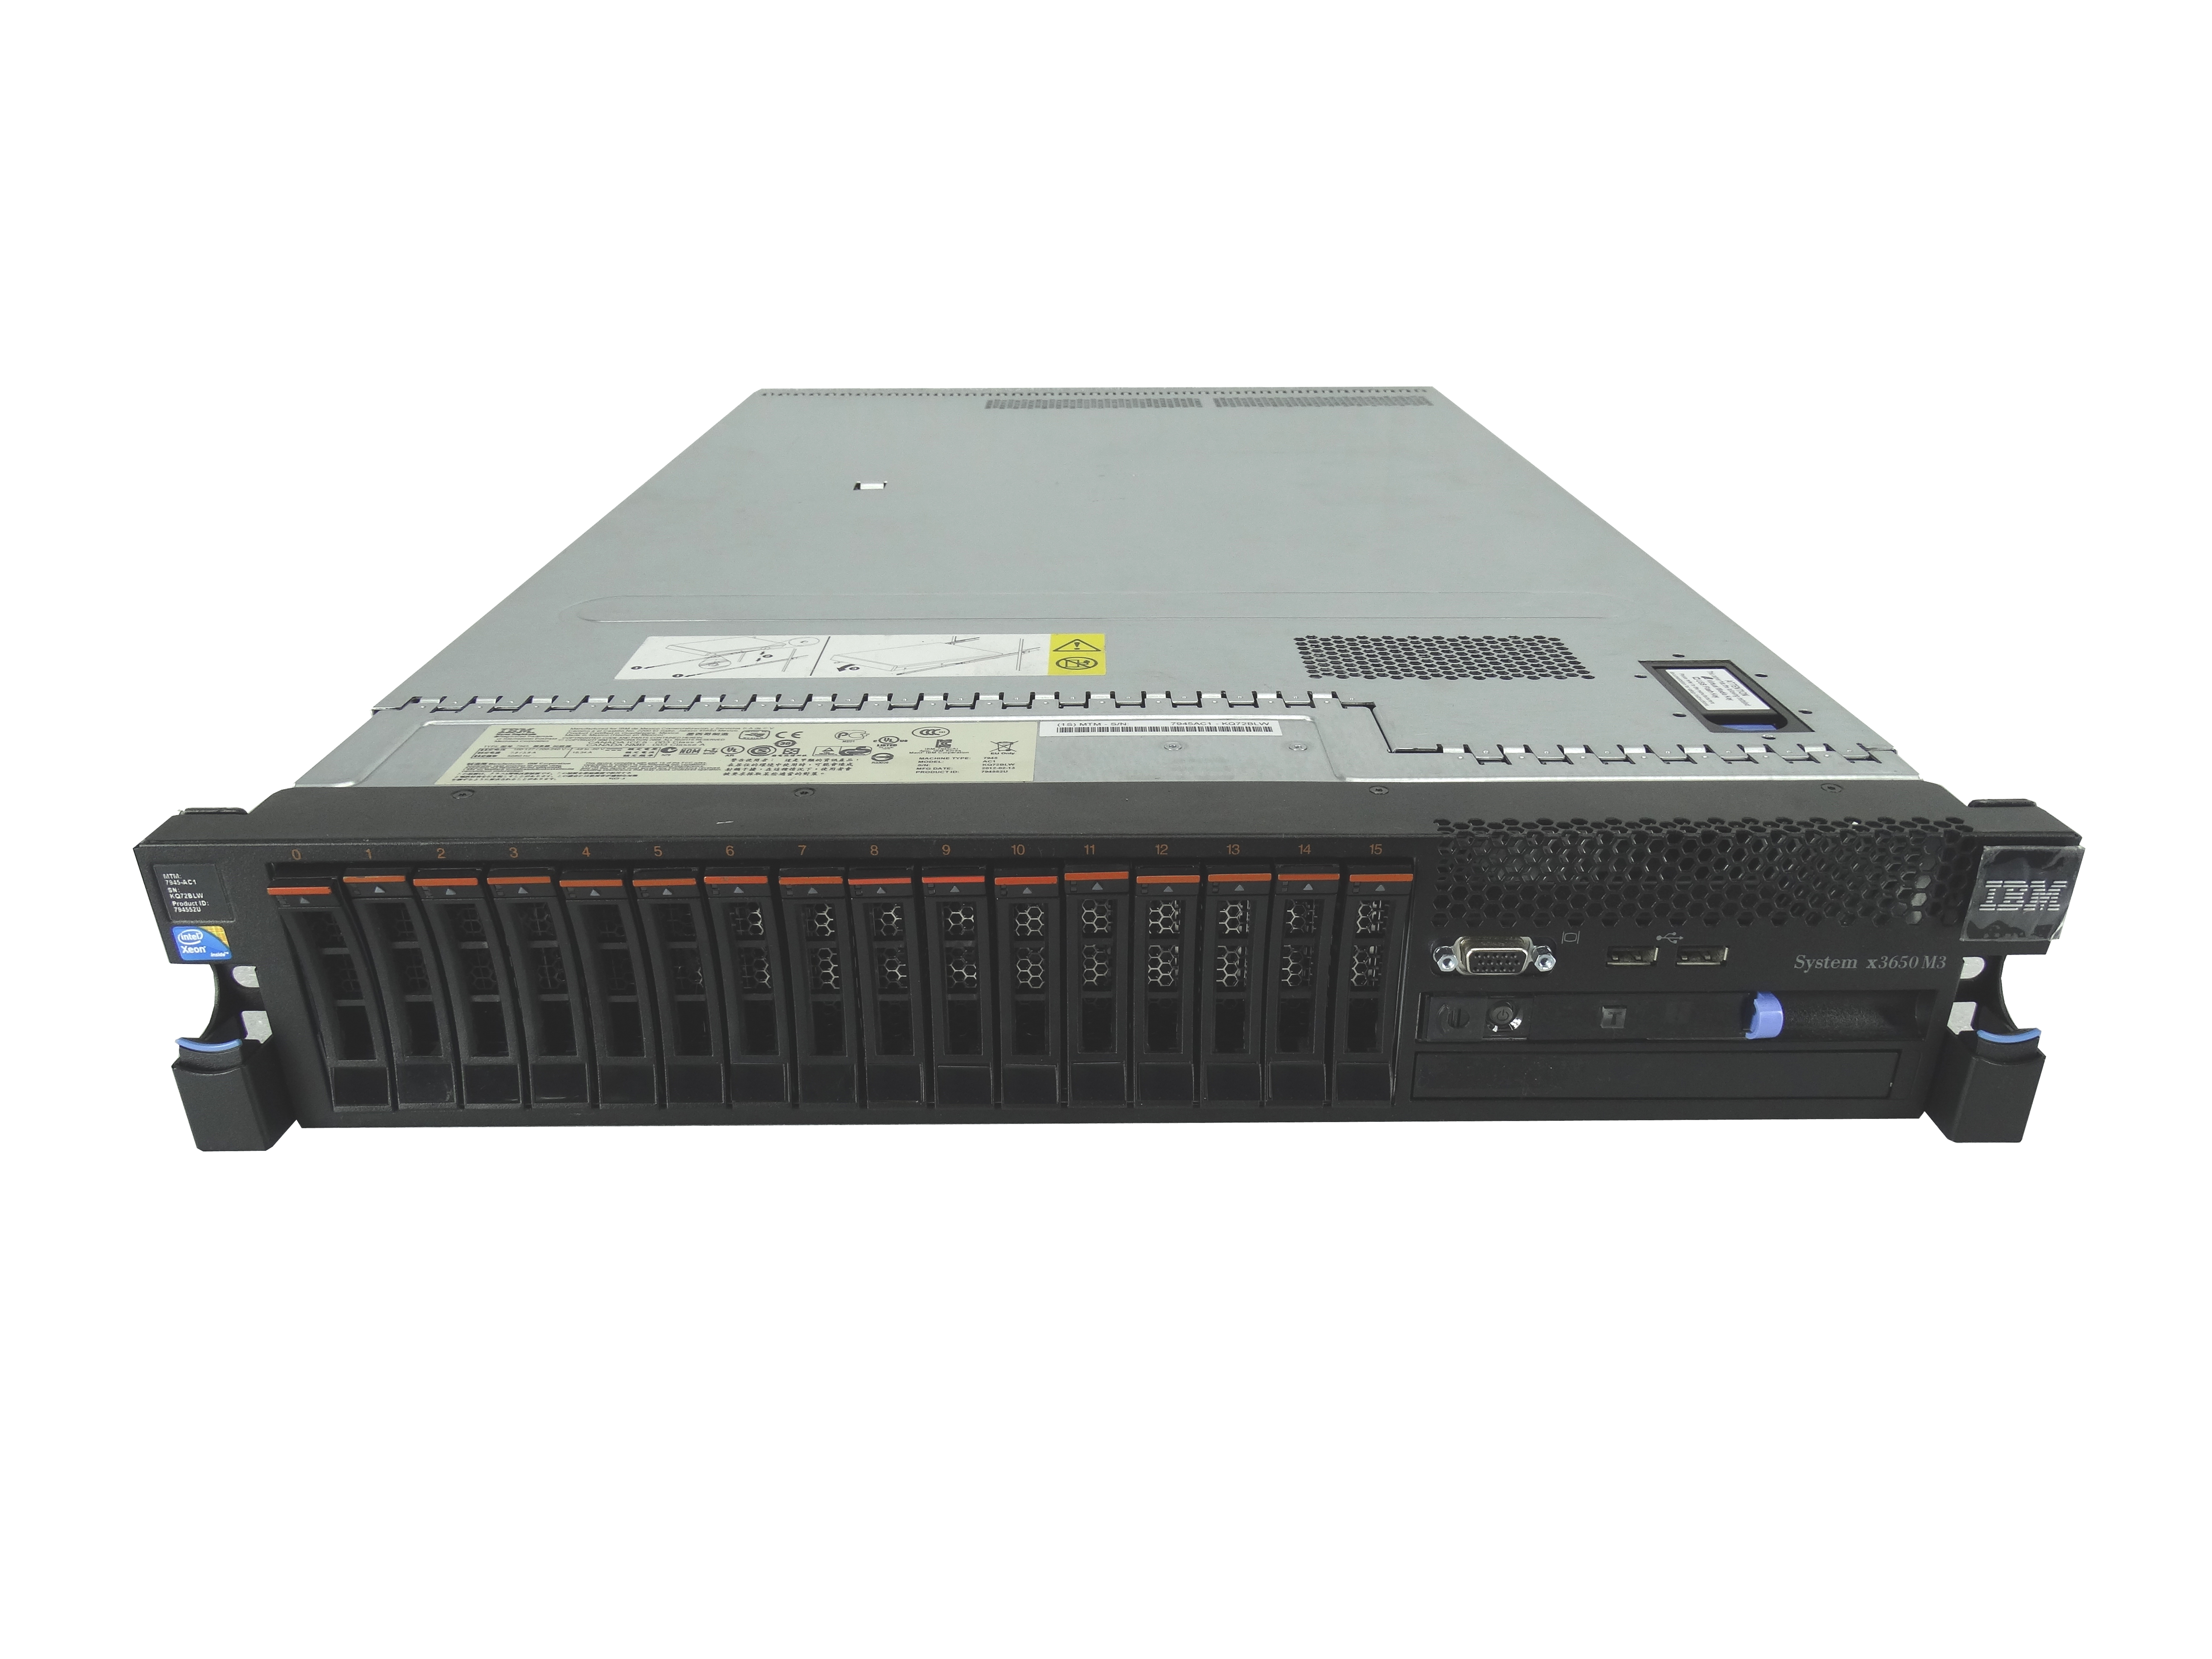 IBM X3650 M3 Server *Website upgrade in progress. Please contact us with any questions you may have.*